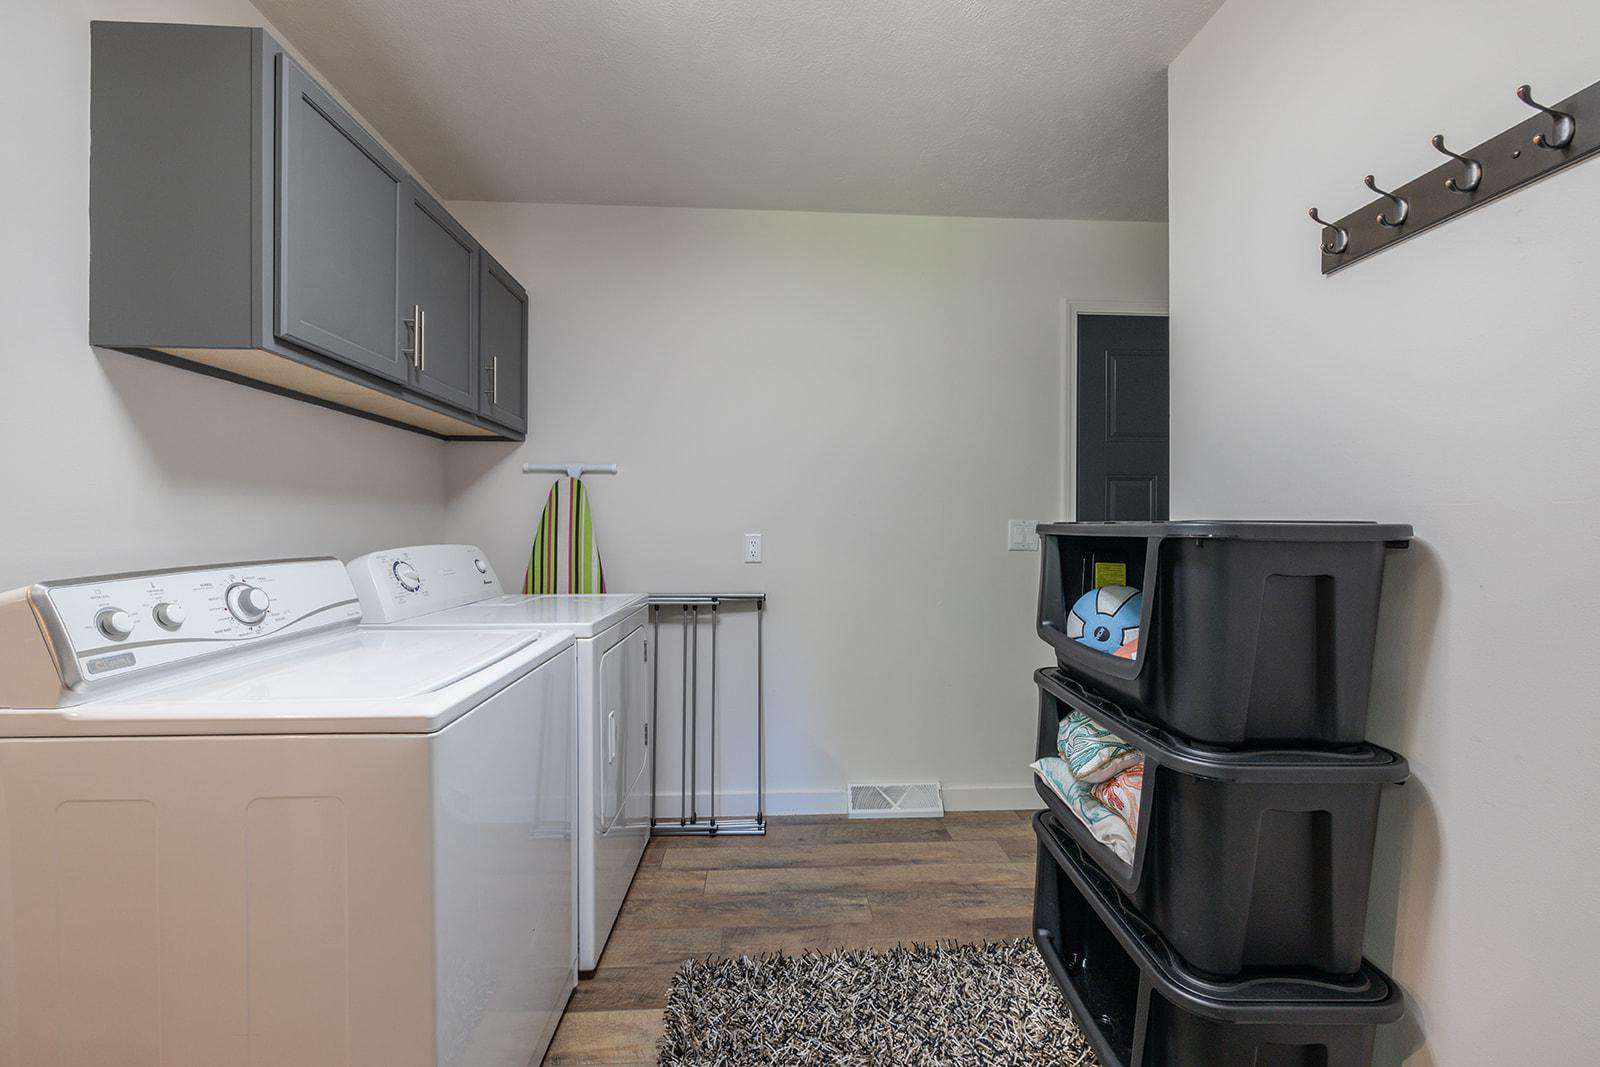 Huge laundry room! Soap, dryer sheets, bleach included!!